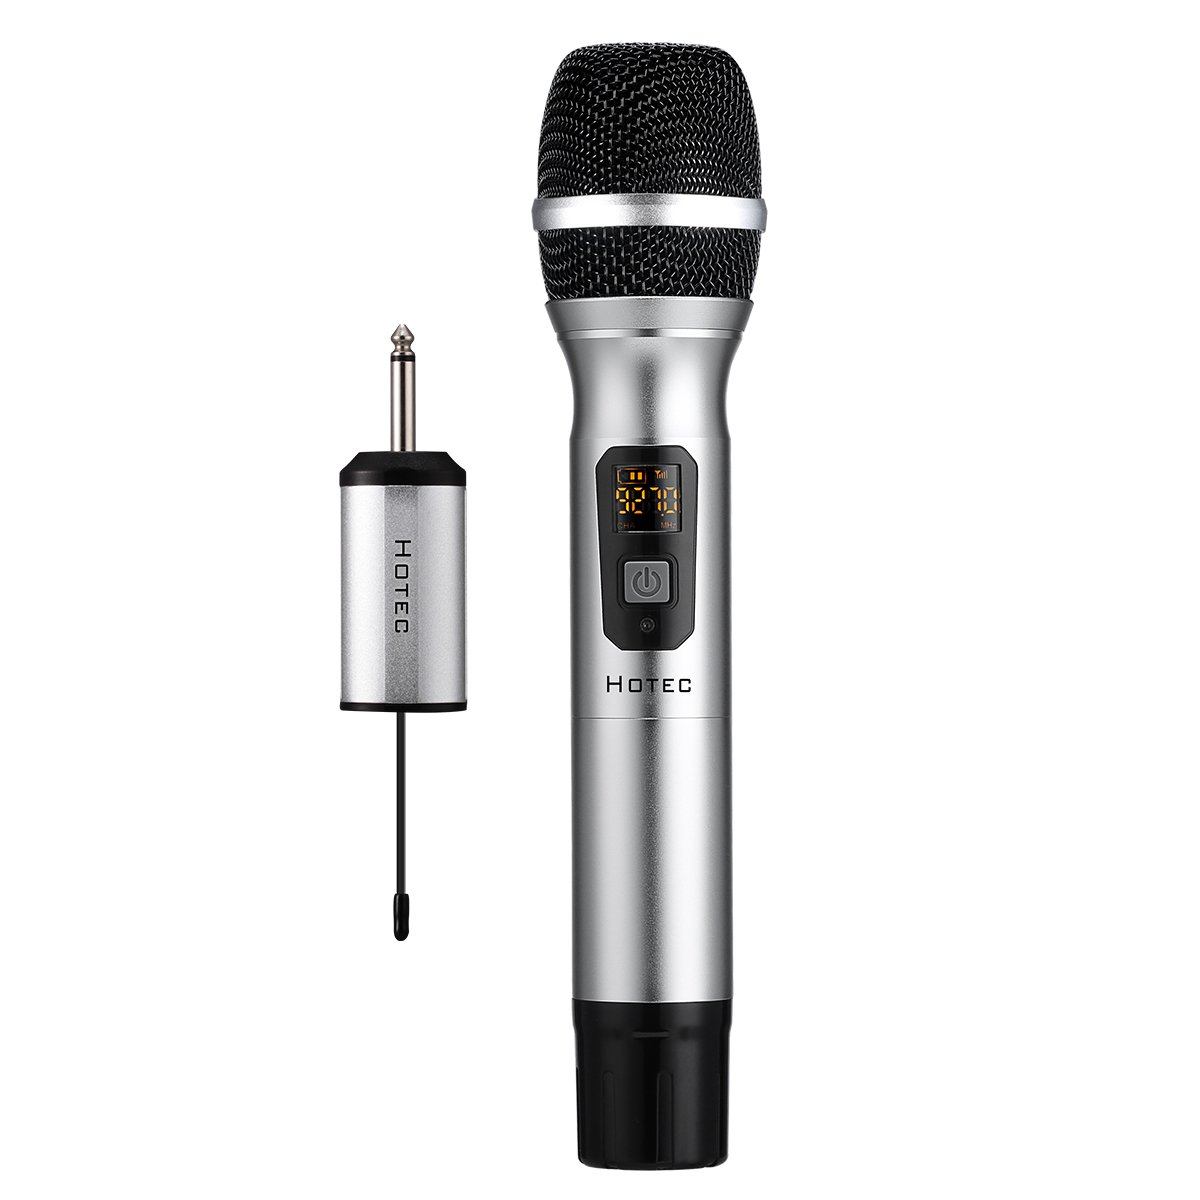 Hotec 25 Channel UHF Handheld Wireless Microphone with Mini Portable Receiver 1/4'' Output, for Church/Home/Karaoke/Business Meeting by Hotec